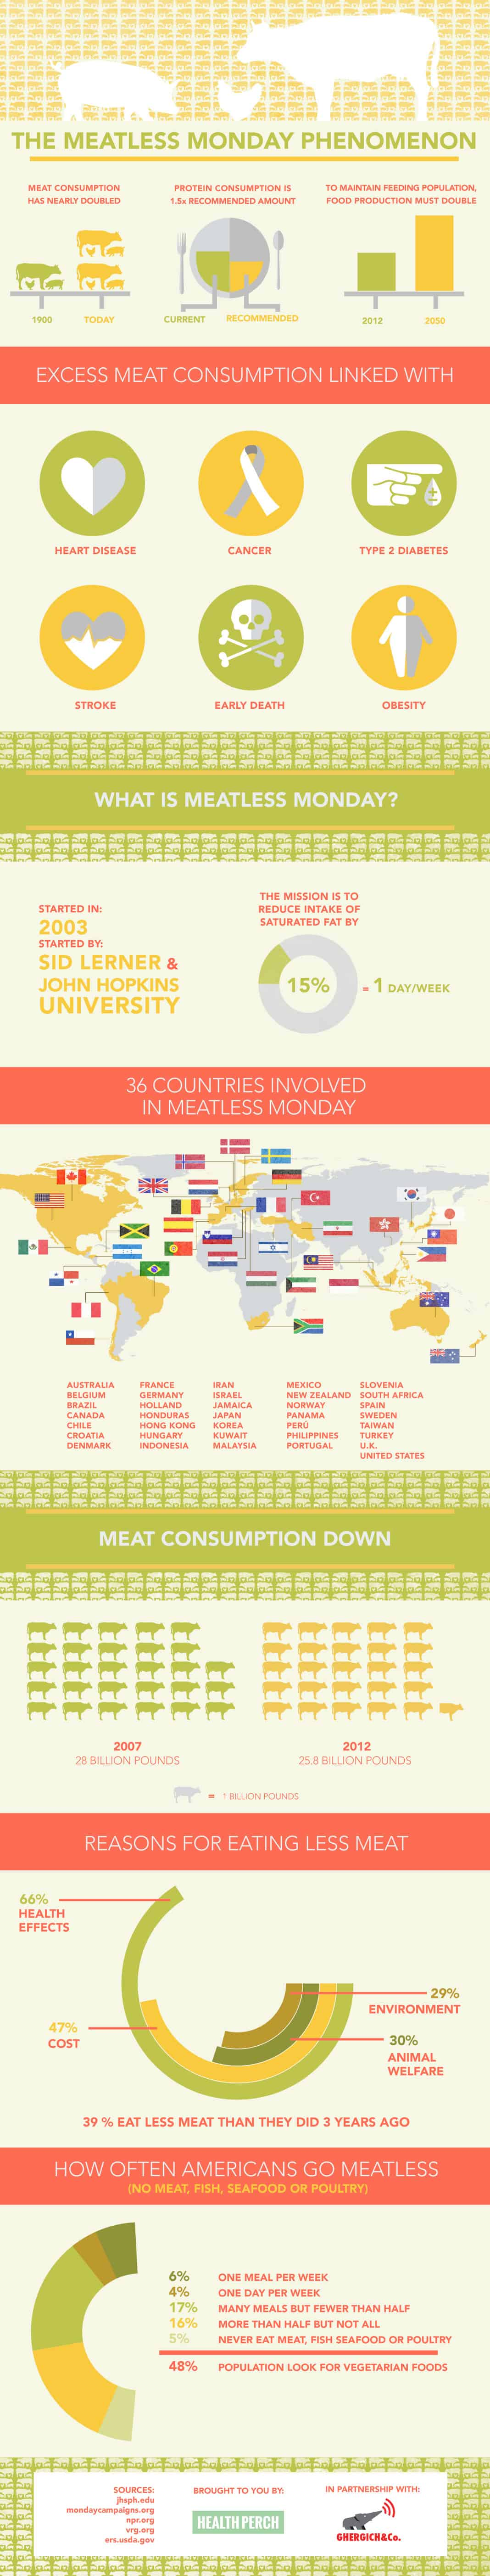 Meatless Monday Infographic - Find out the history, countries involved and purpose of Meatless Monday